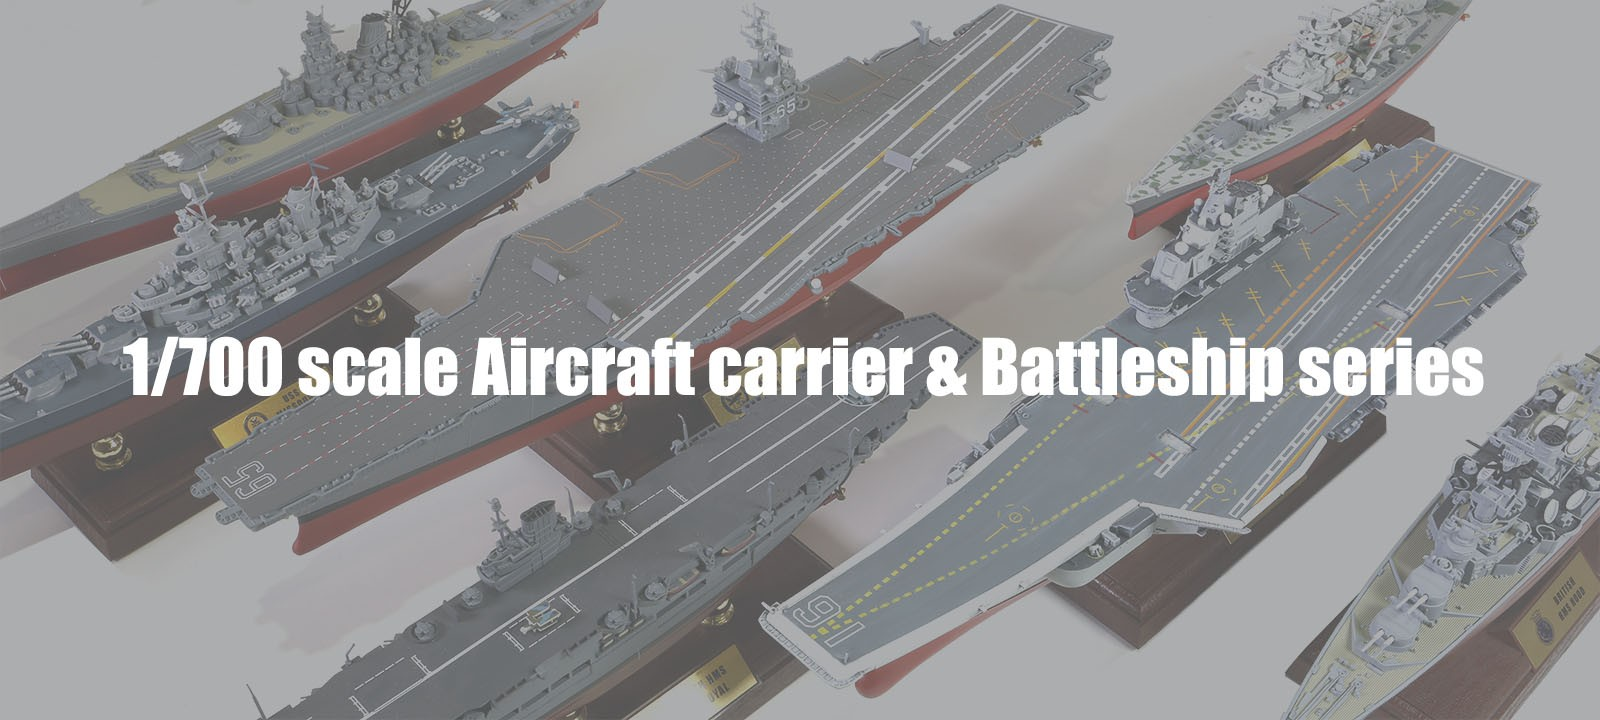 700th scale aircraft carrier series